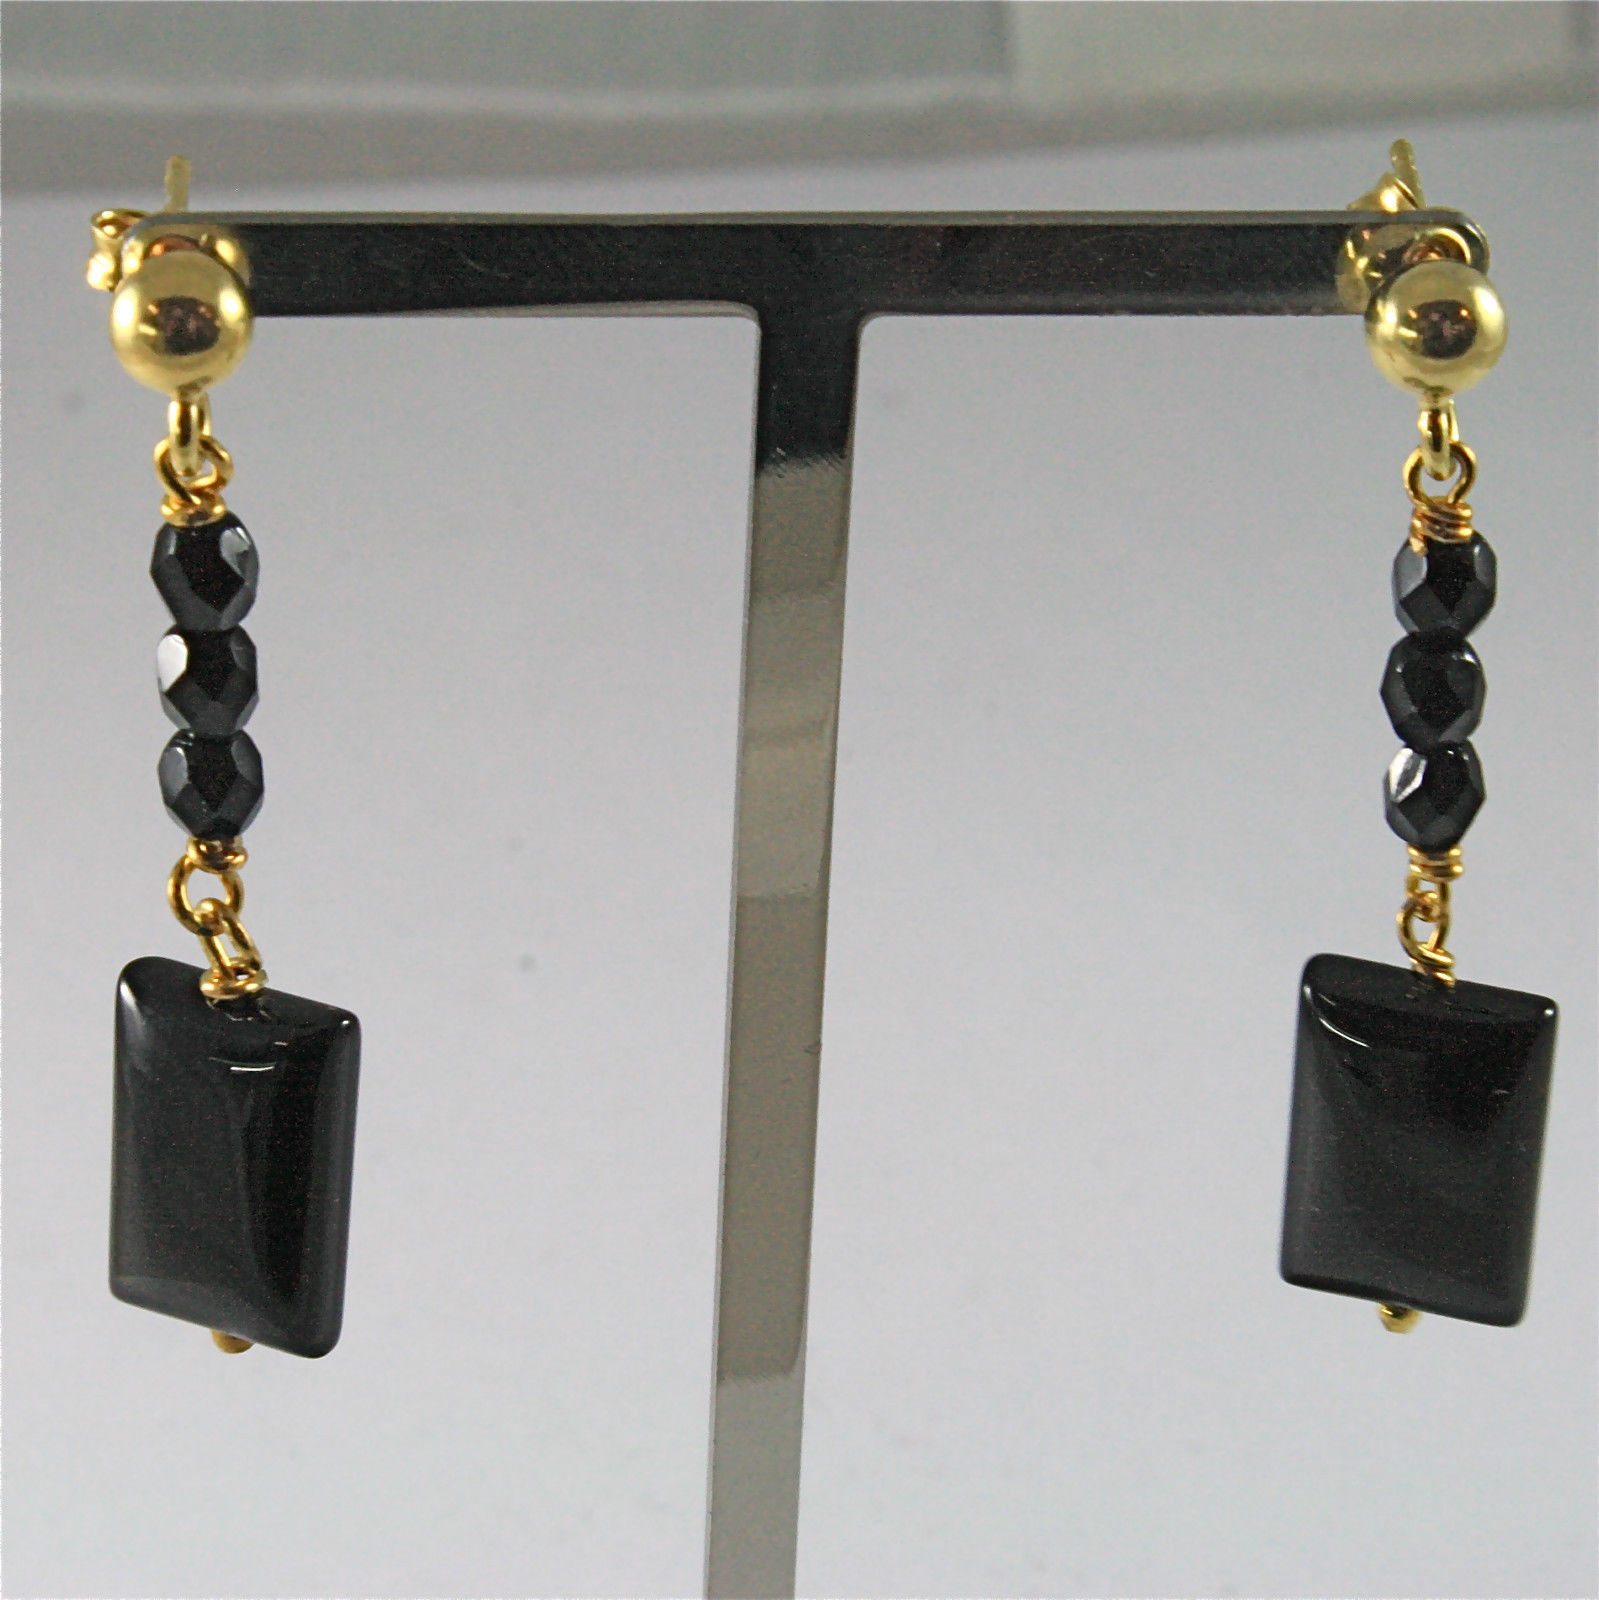 .925 GOLD PLATED SILVER PENDANT EARRINGS WITH RECTANGULAR BLACK ONYX, 1.69 IN